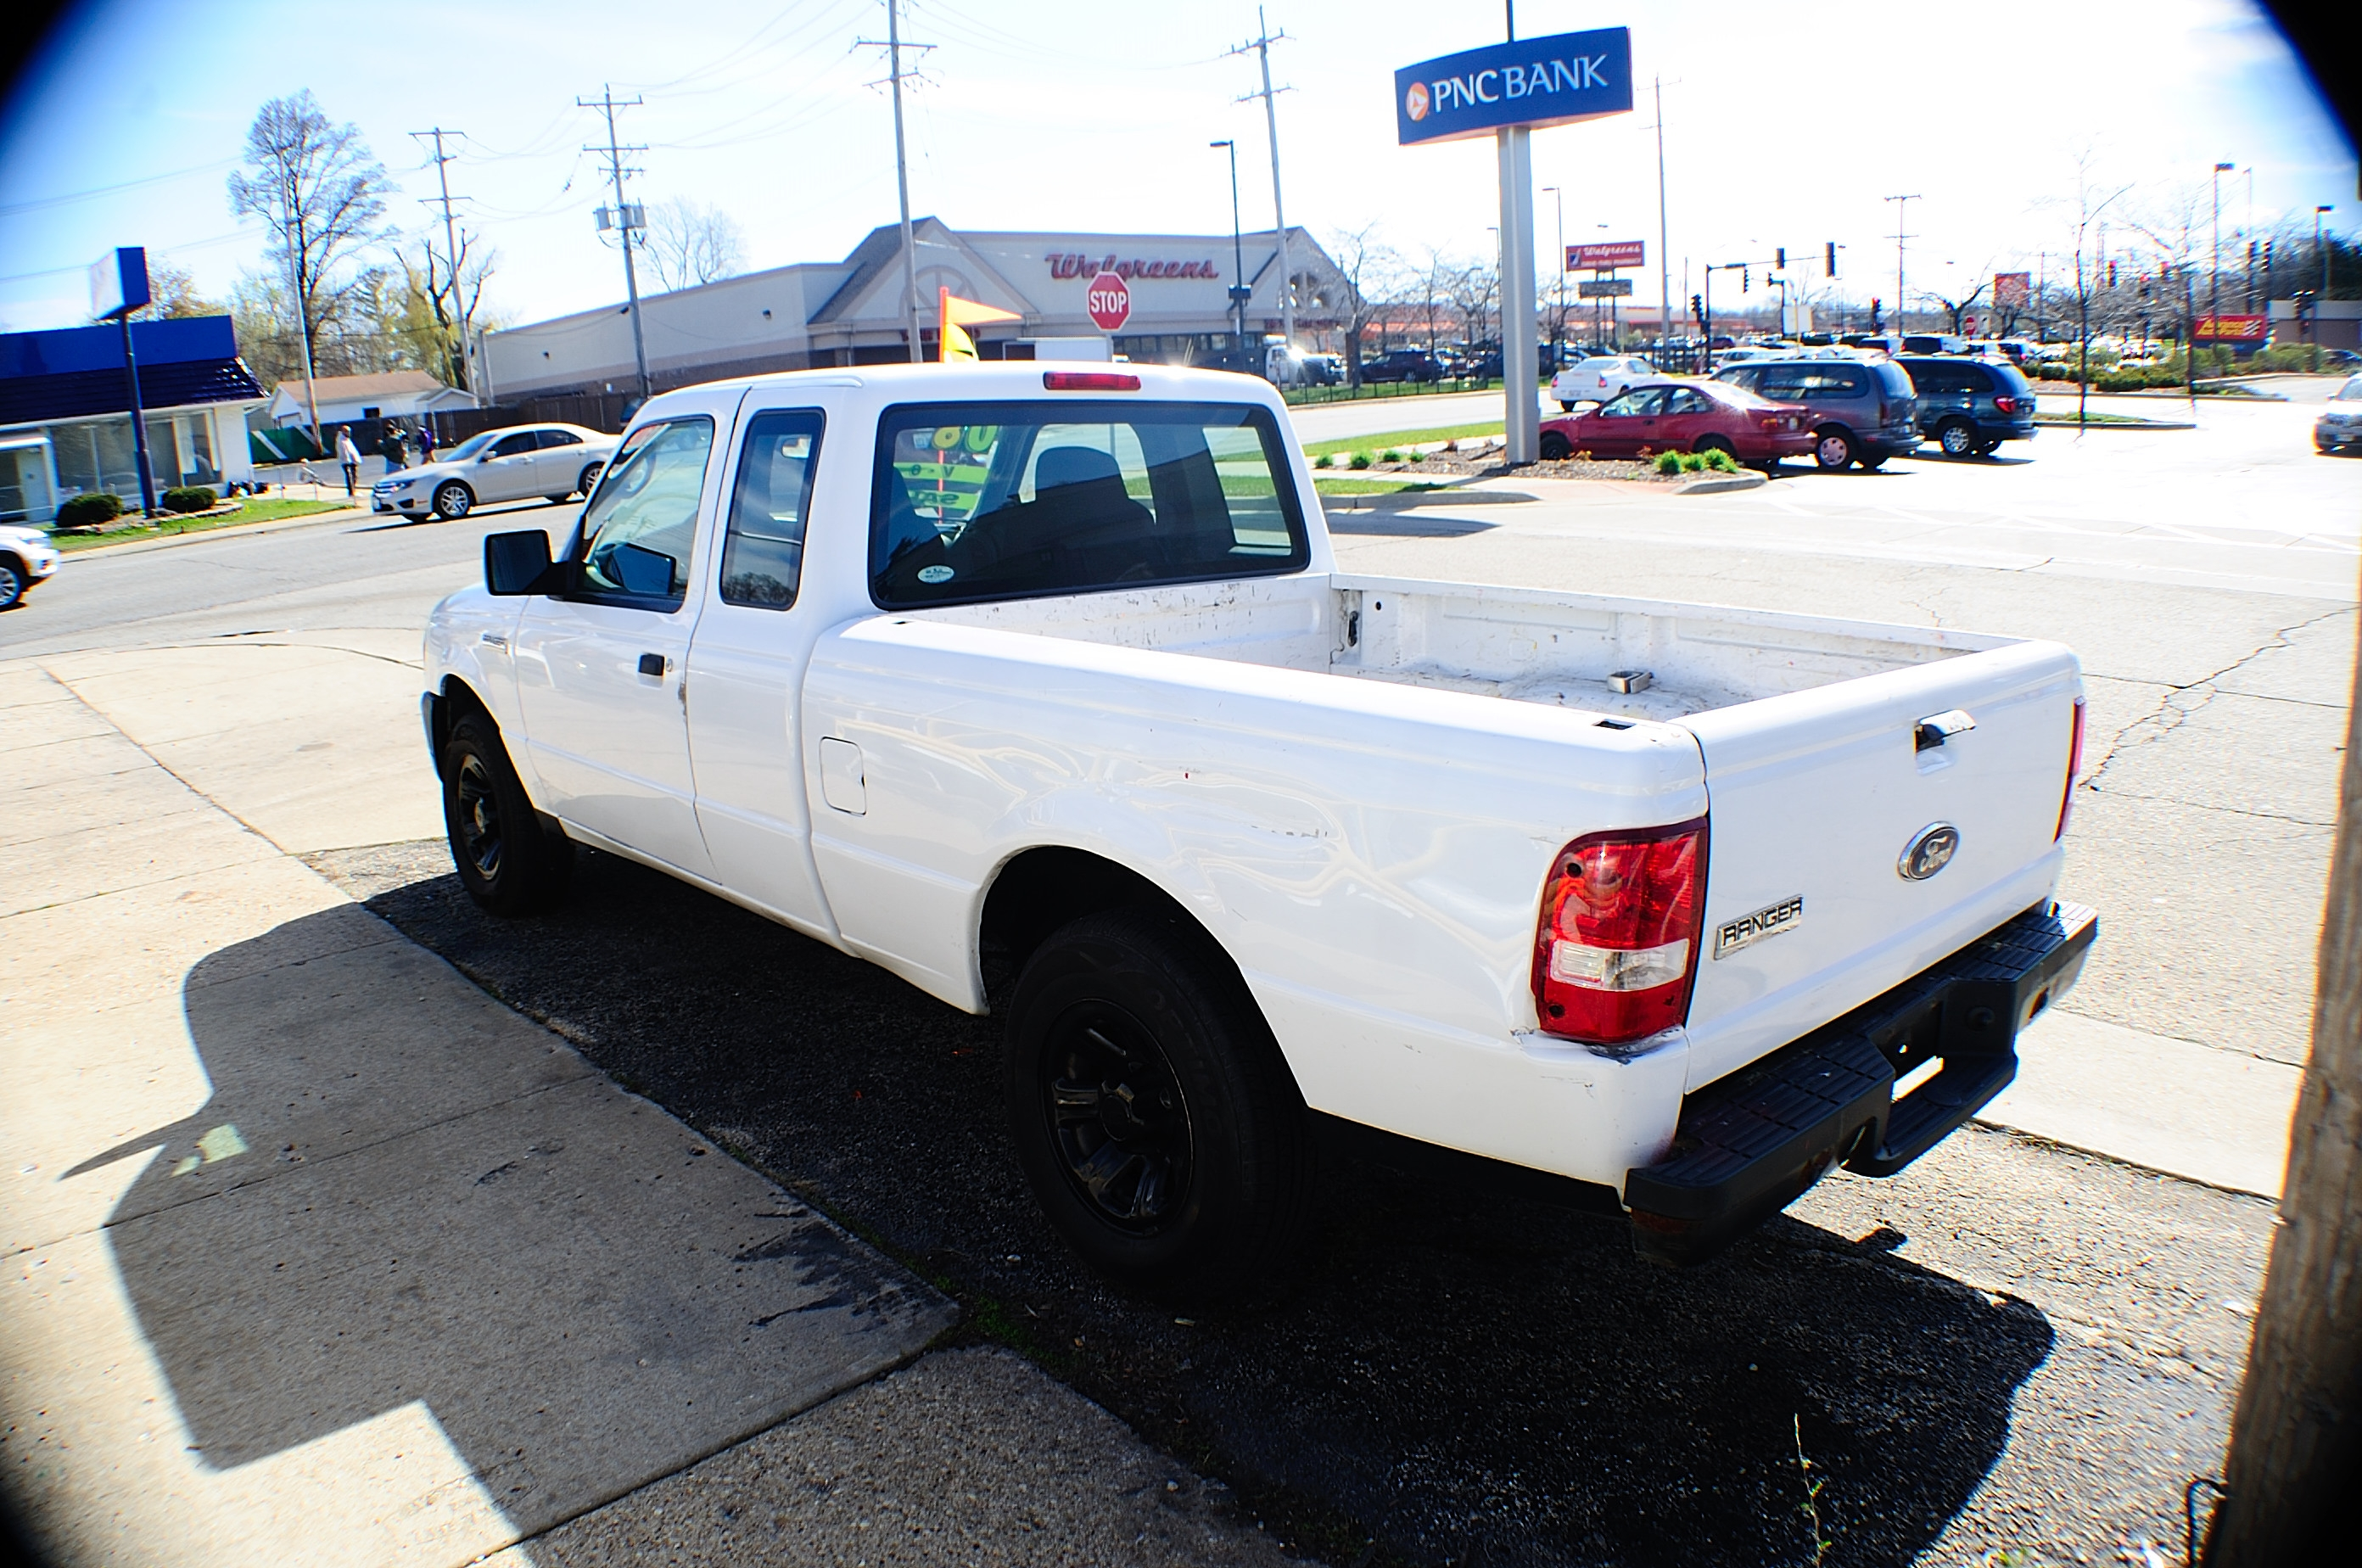 2008 Ford Ranger Ext White Pickup Truck sale Buffalo Grove Deerfield Fox Lake